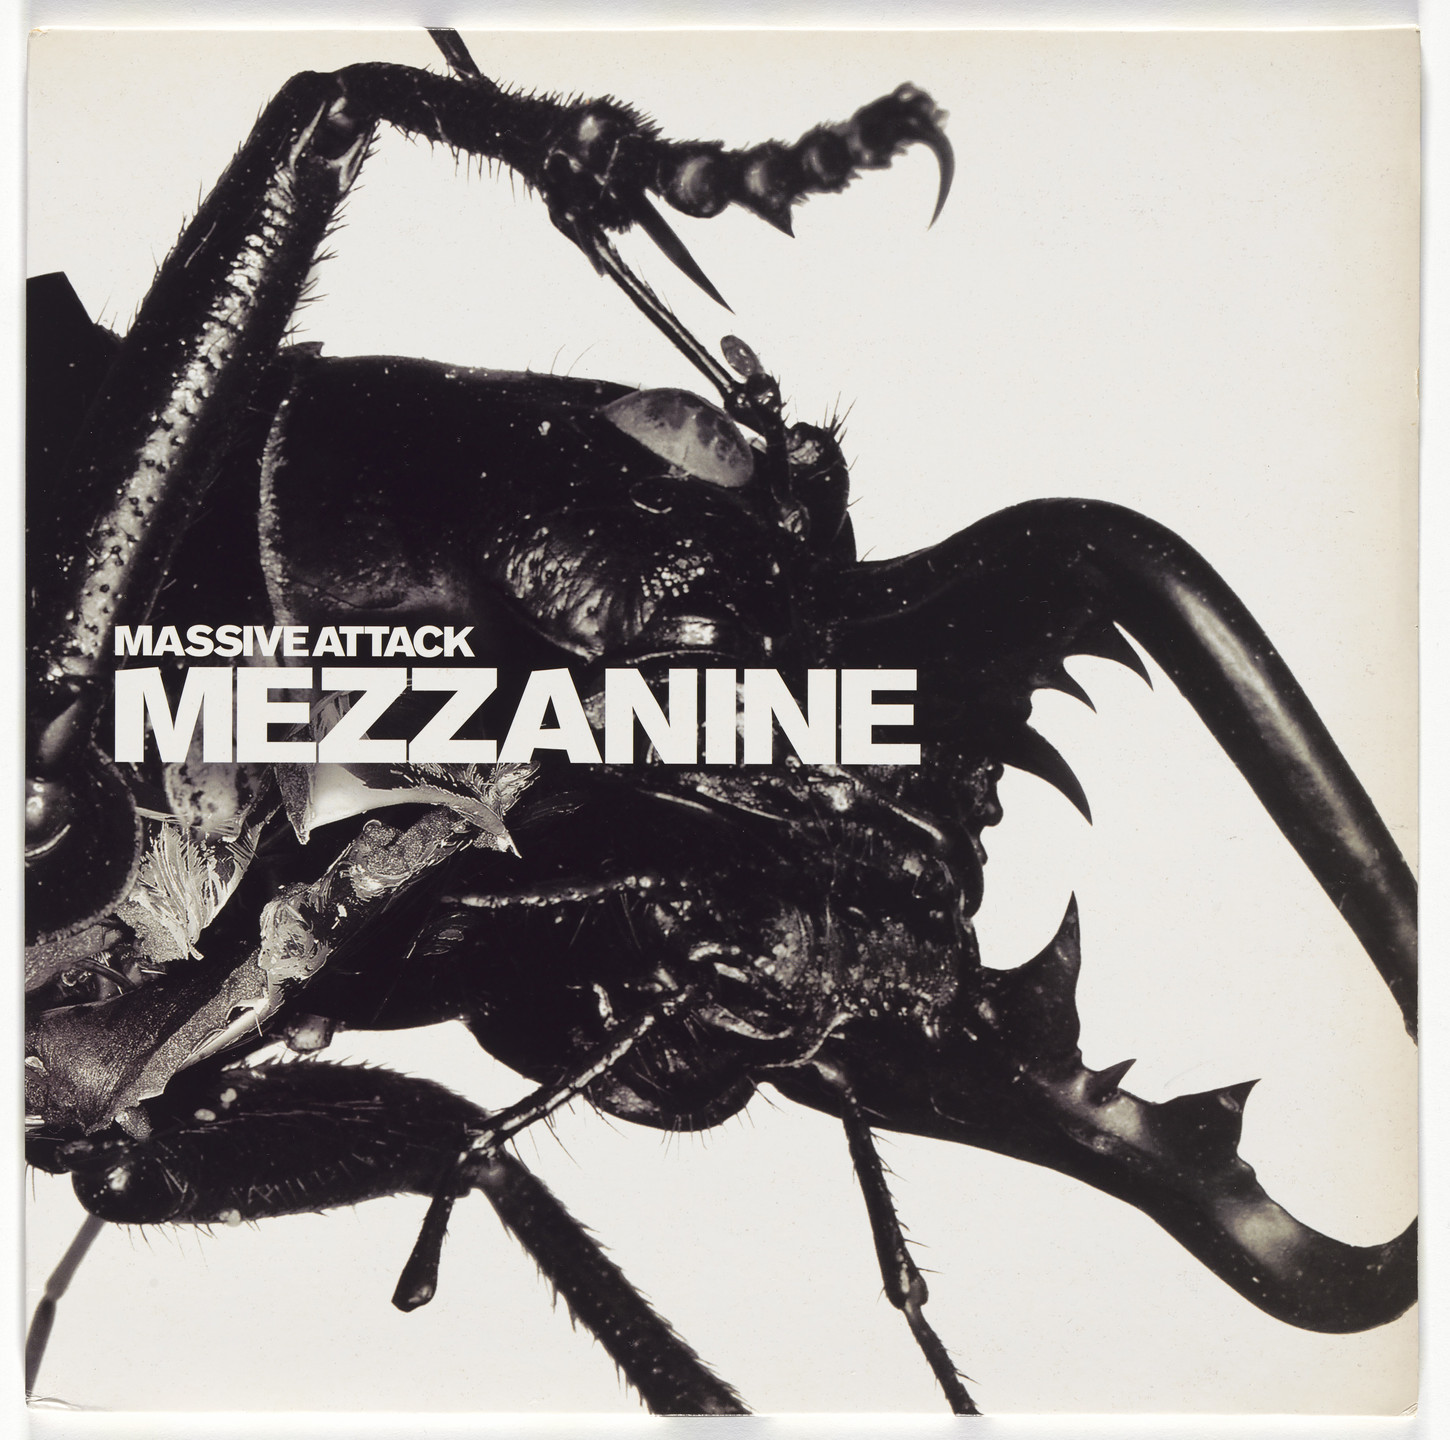 Tom Hingston, Robert del Naja, Nick Knight. Album cover for Massive Attack, Mezzanine. 1998